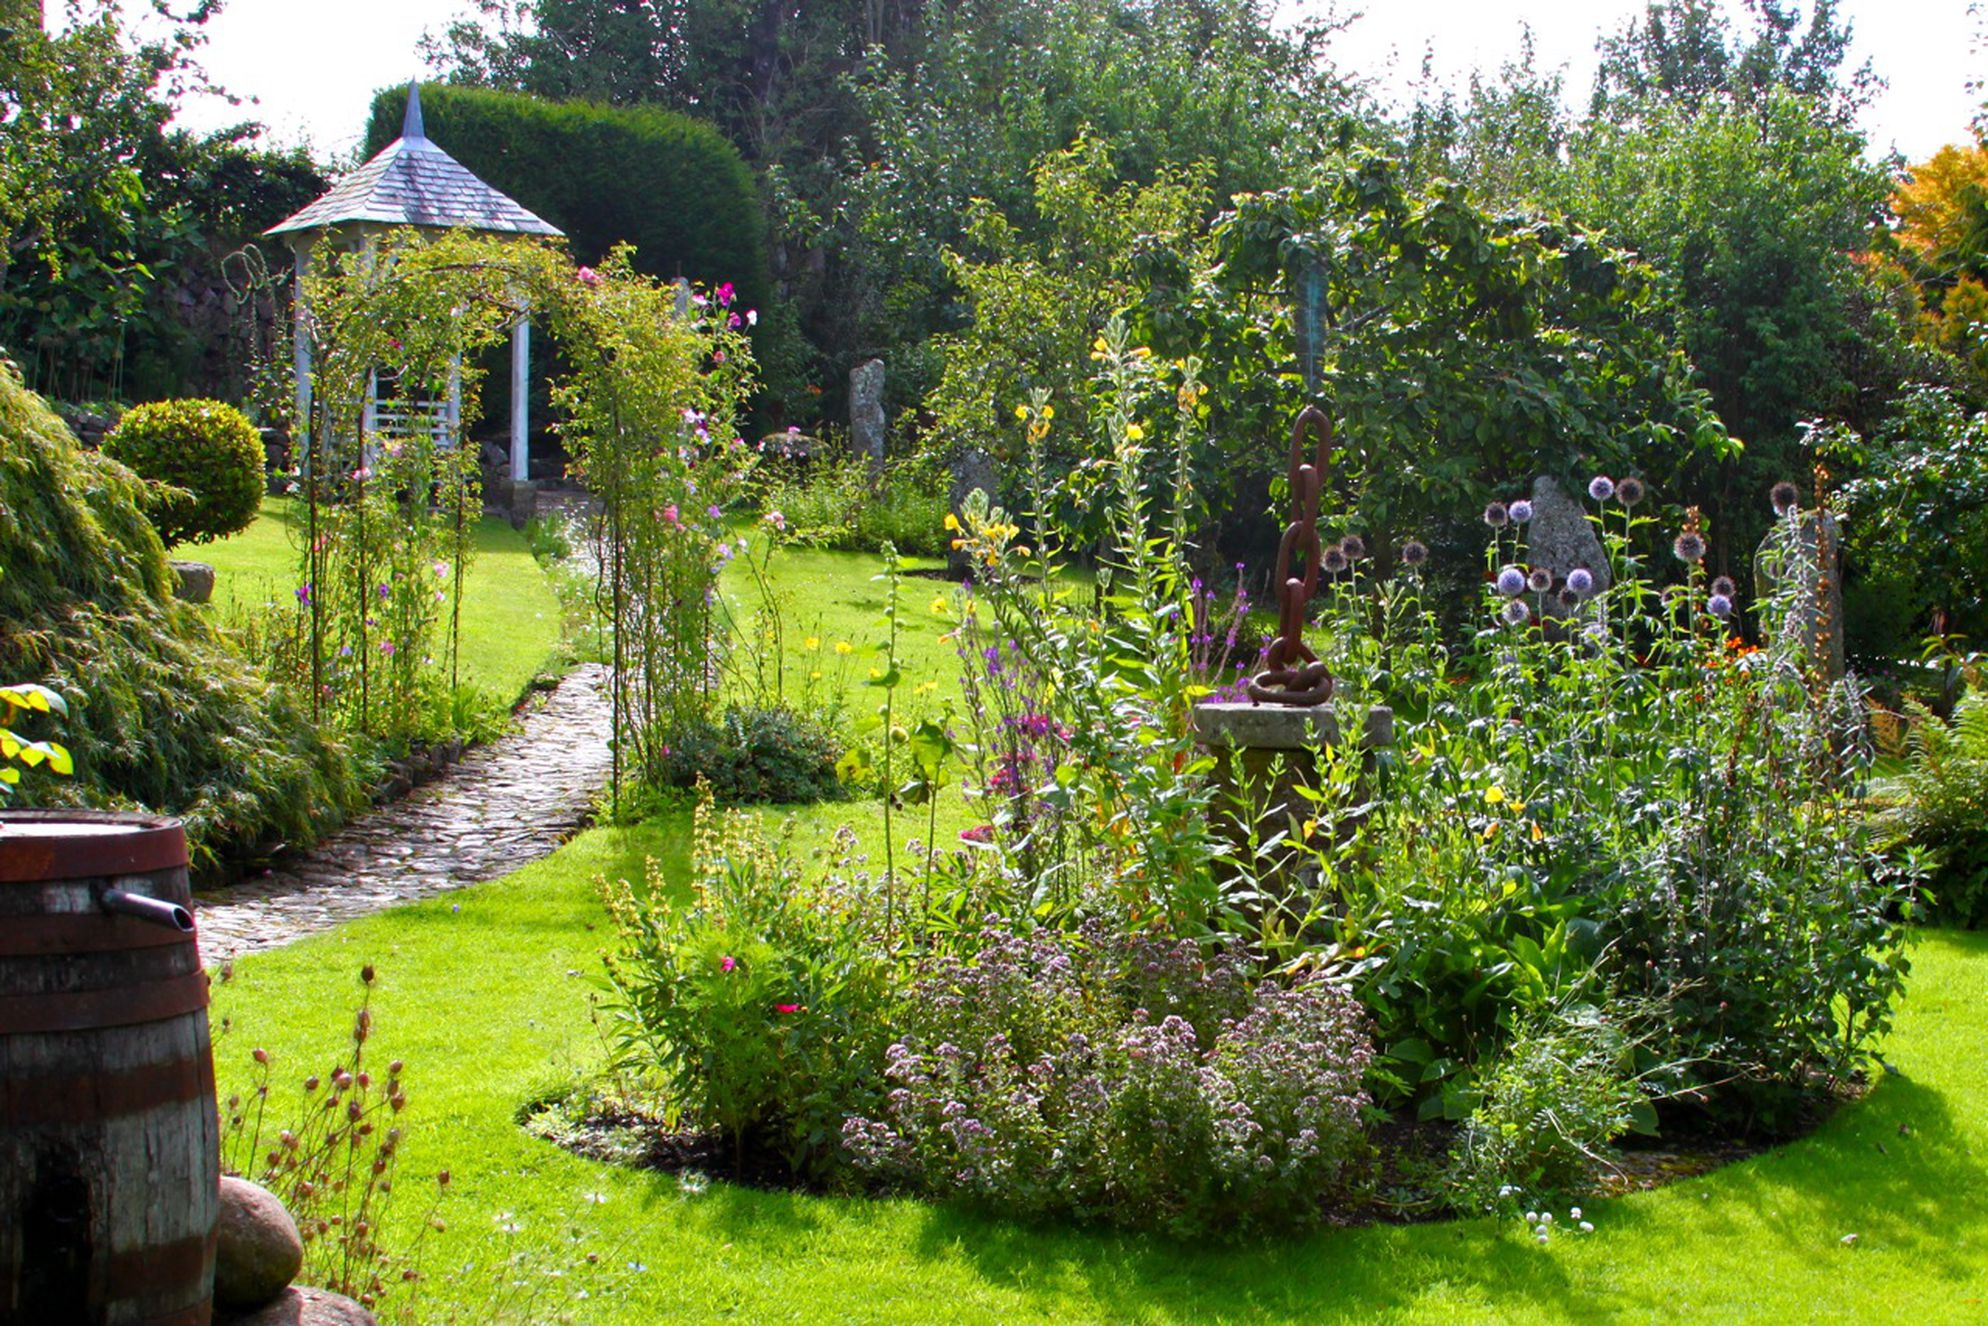 View of the lovely garden with the sculpture and pathway leading up the garden